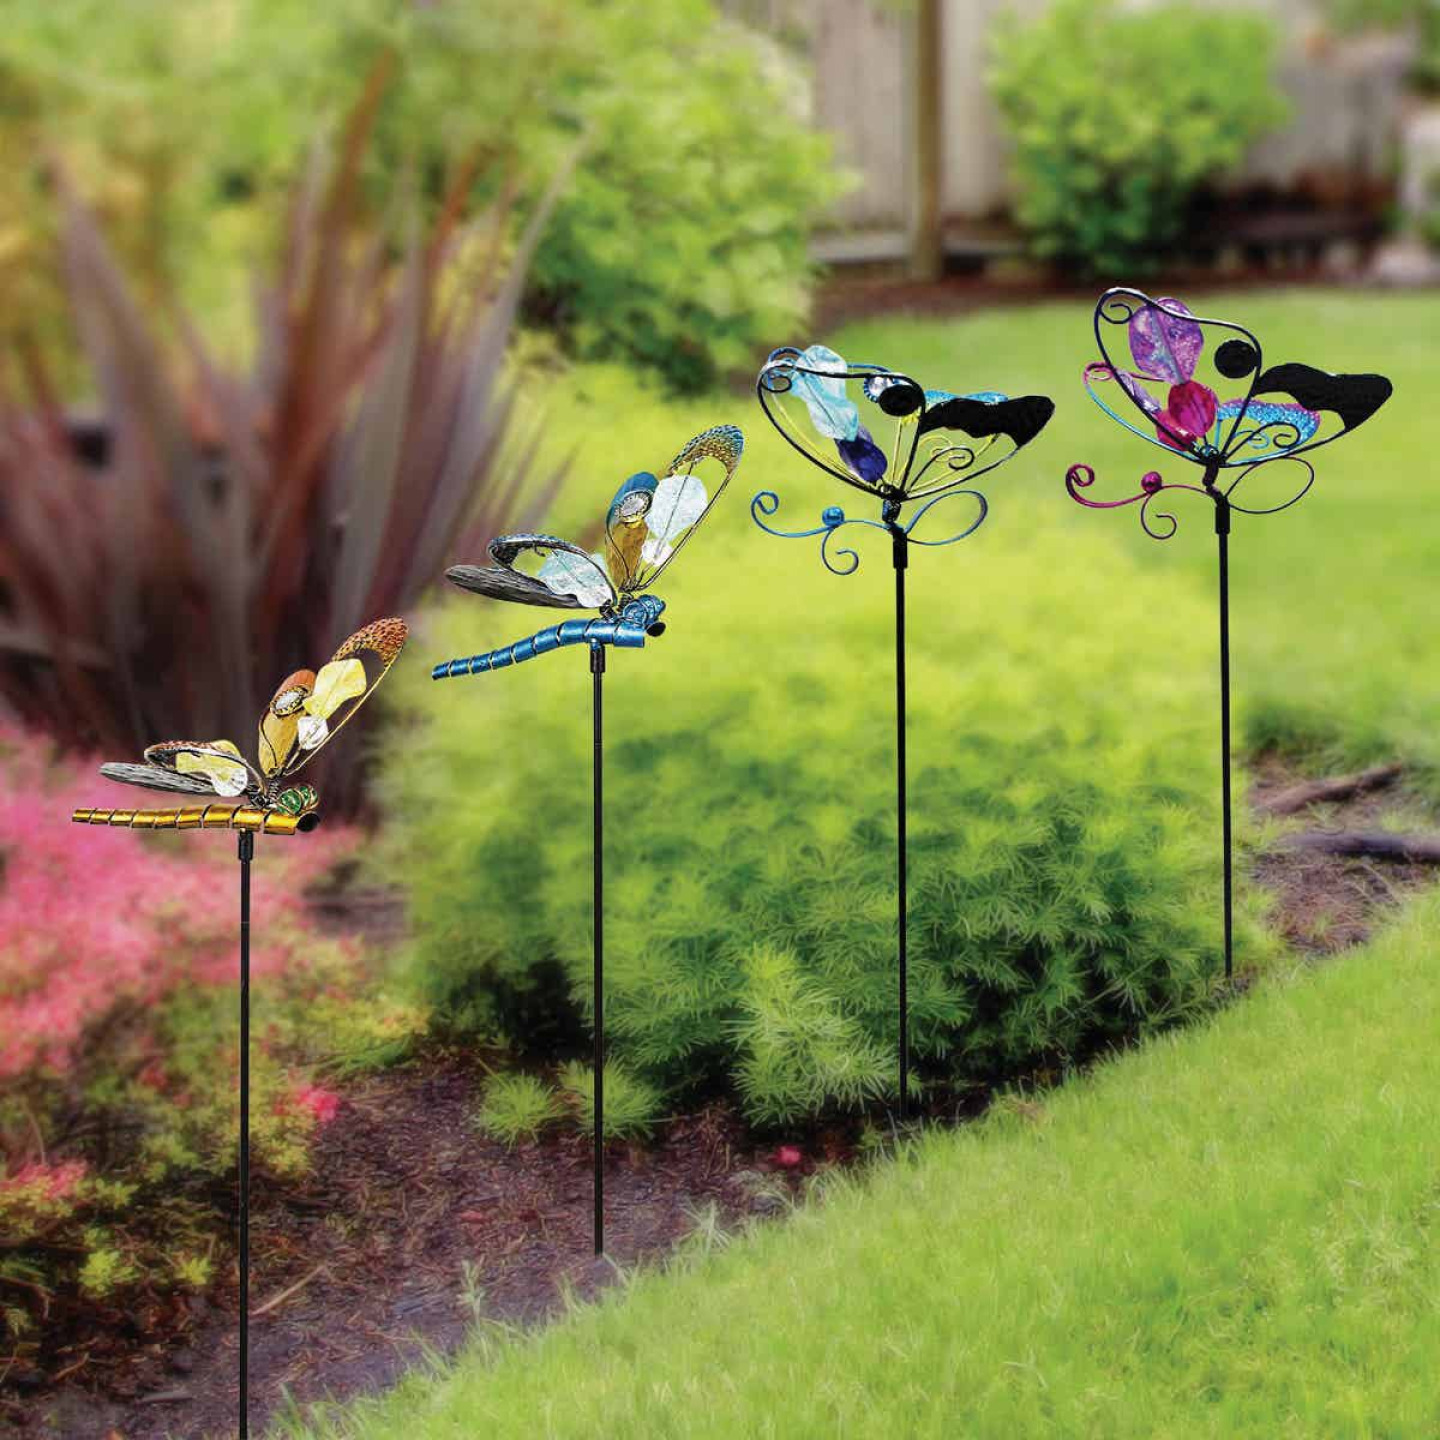 Alpine 36 In. Metal & Glass Assorted Insect Garden Stake Lawn Ornament Image 2